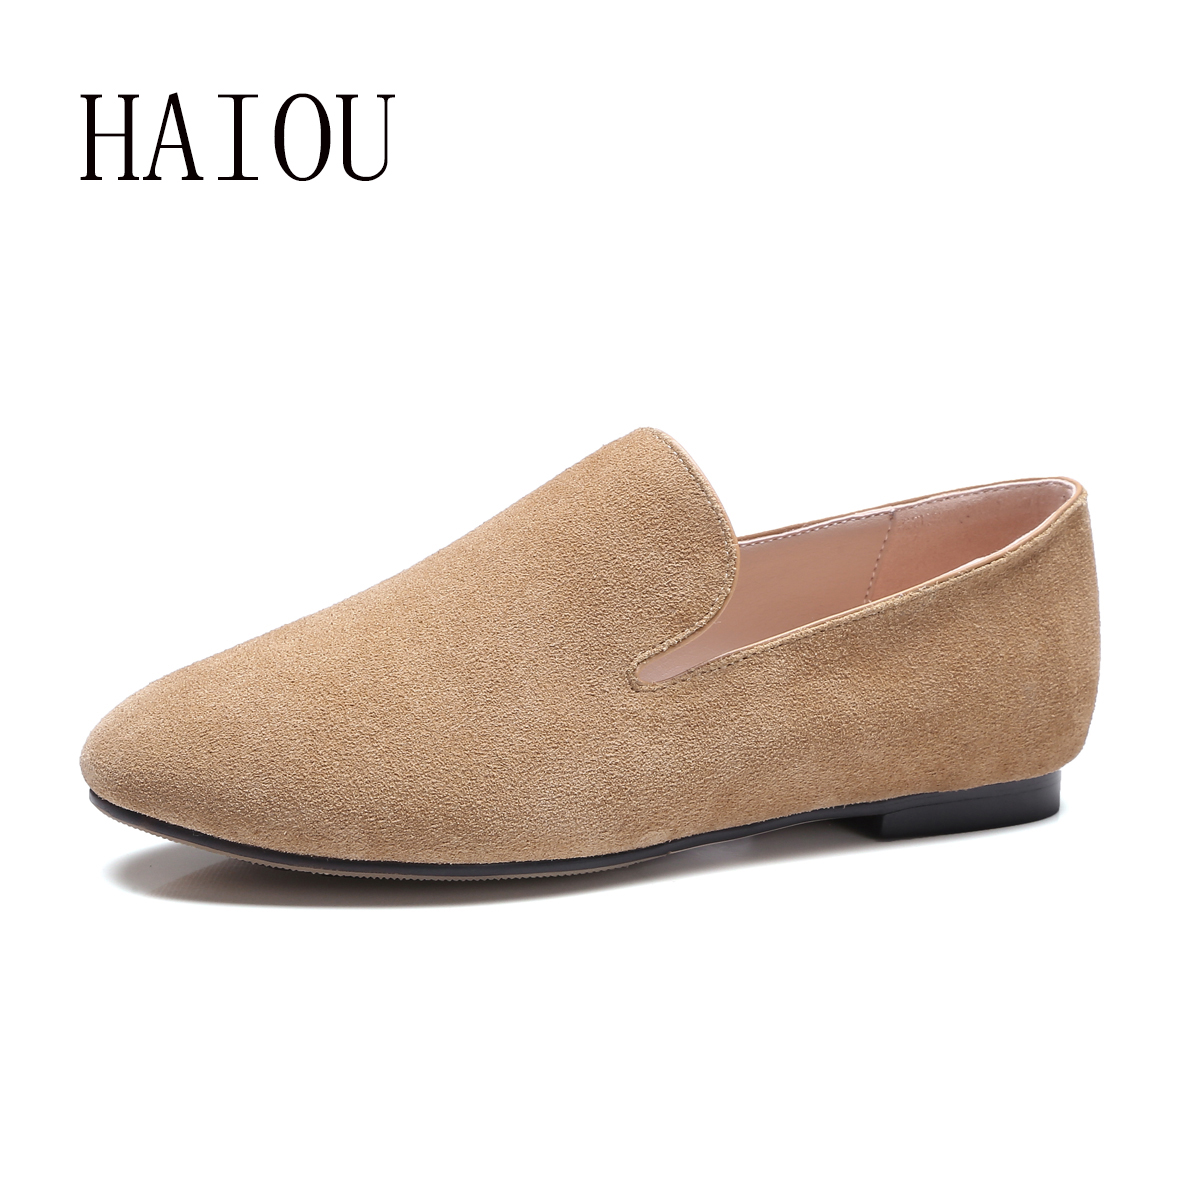 Top Quality Loafers Women Fashion Womens Flats Casual Brand Shoes Round Toe Woman Soft Sole Genuine Leather Shoes Pink Plus Size new 2017 spring summer women shoes pointed toe high quality brand fashion womens flats ladies plus size 41 sweet flock t179